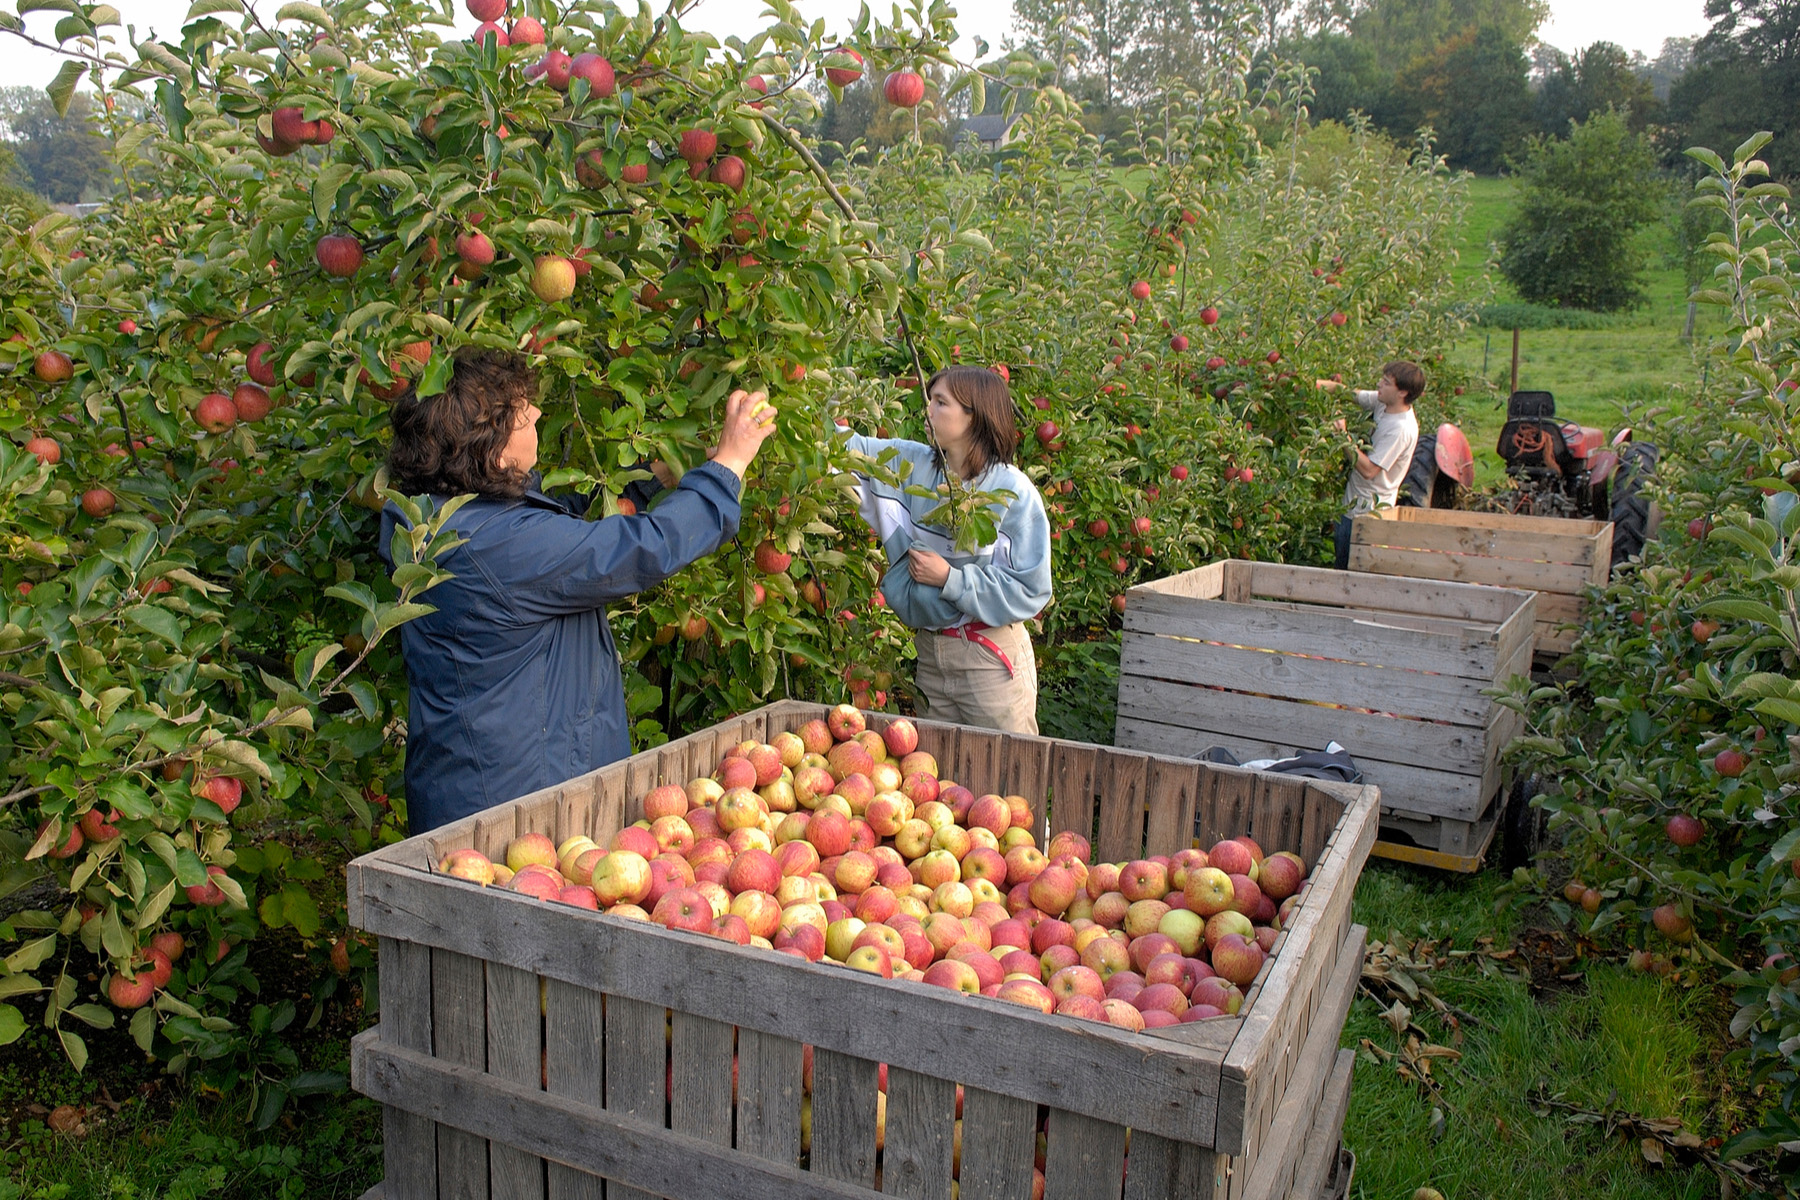 Temporary agricultural workers in France